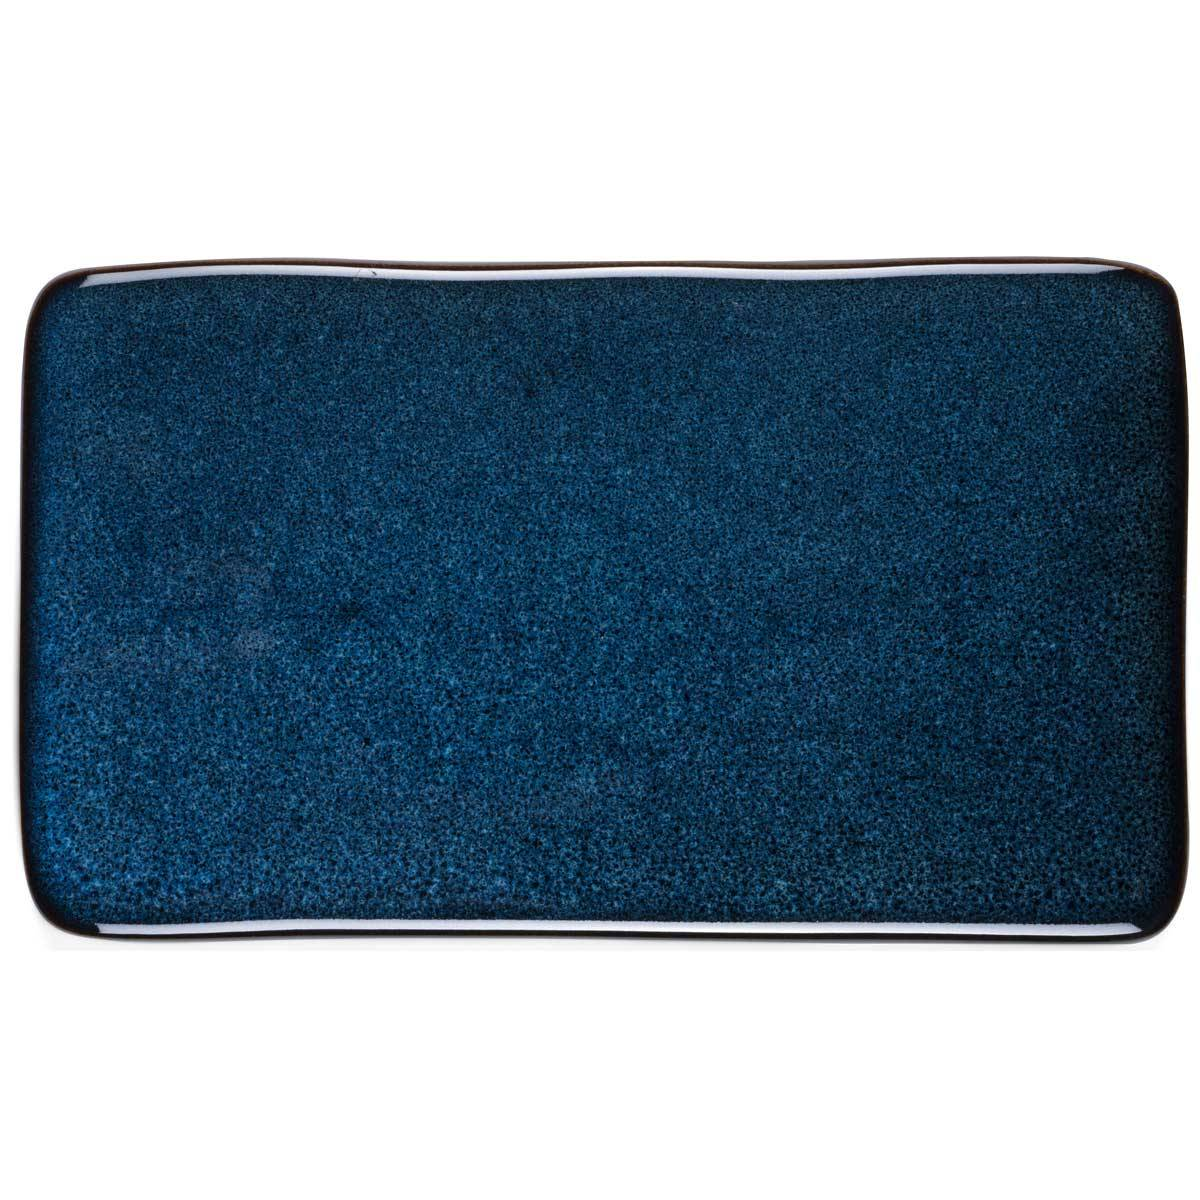 Bitz Bitz Serving Plate 22x12 cm, Dark Blue